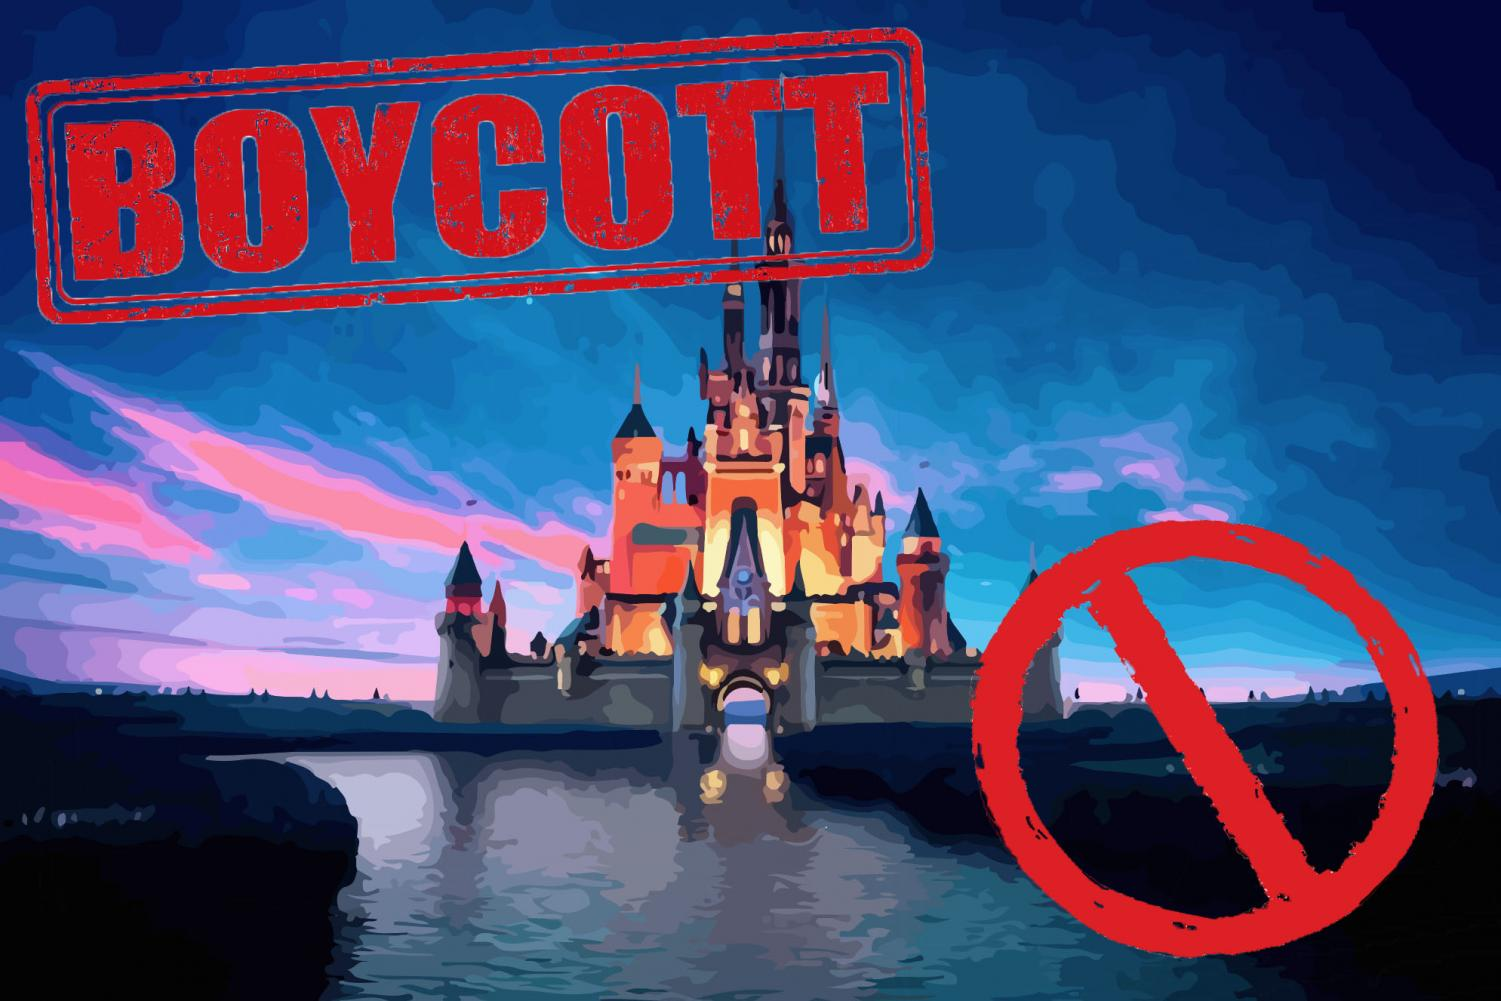 Walt Disney Studios has invested in the strategy of producing live-action remakes and sequels, and the result is a steady stream of movies that lack true creativity. Mill Valley News editor in chief Anna Owsley argues that boycott is the only solution.